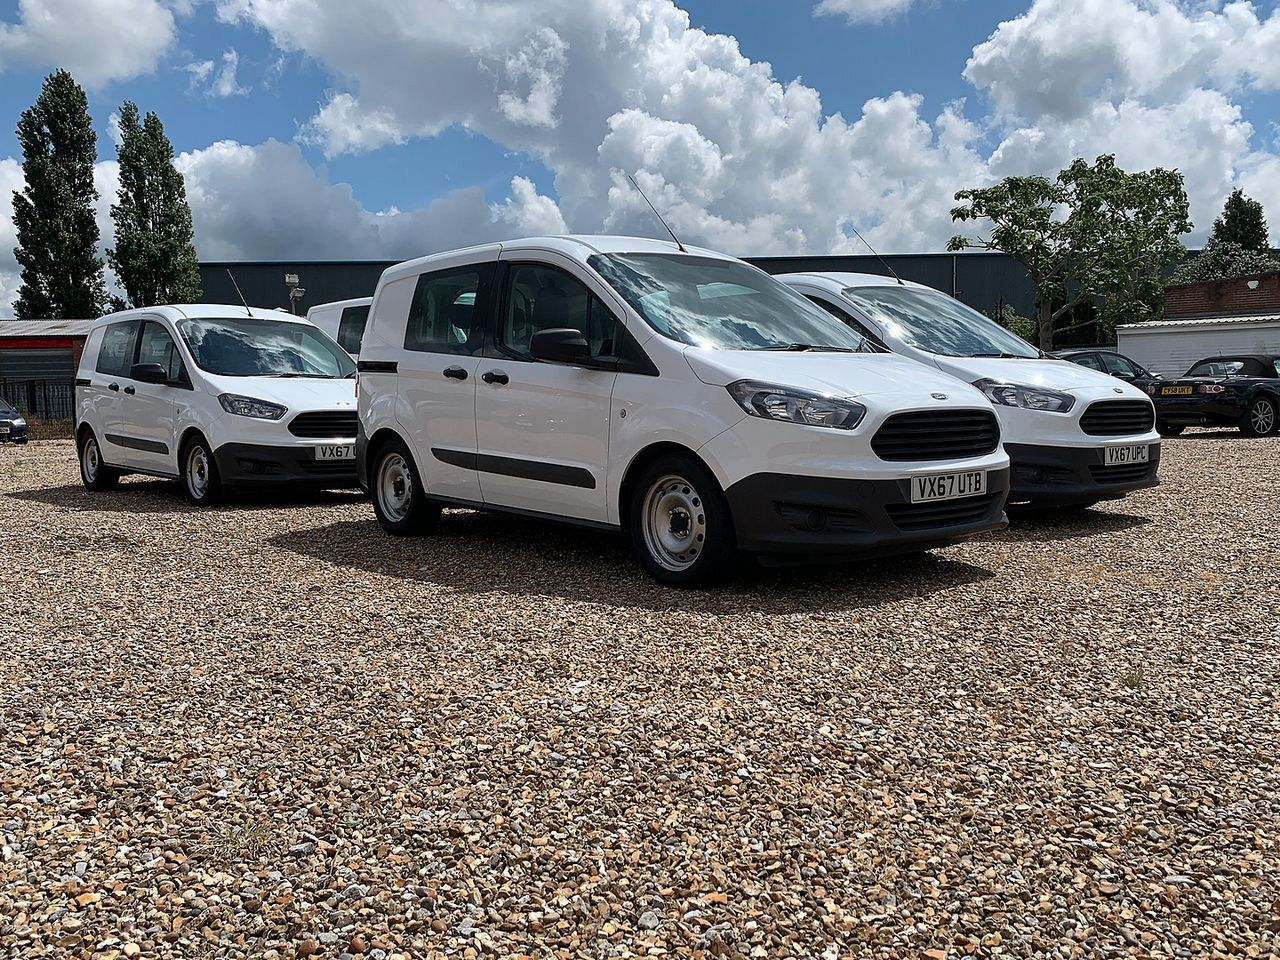 2017 FORD TRANSIT COURIER KOMBI TDCI ECO - Picture 1 of 6